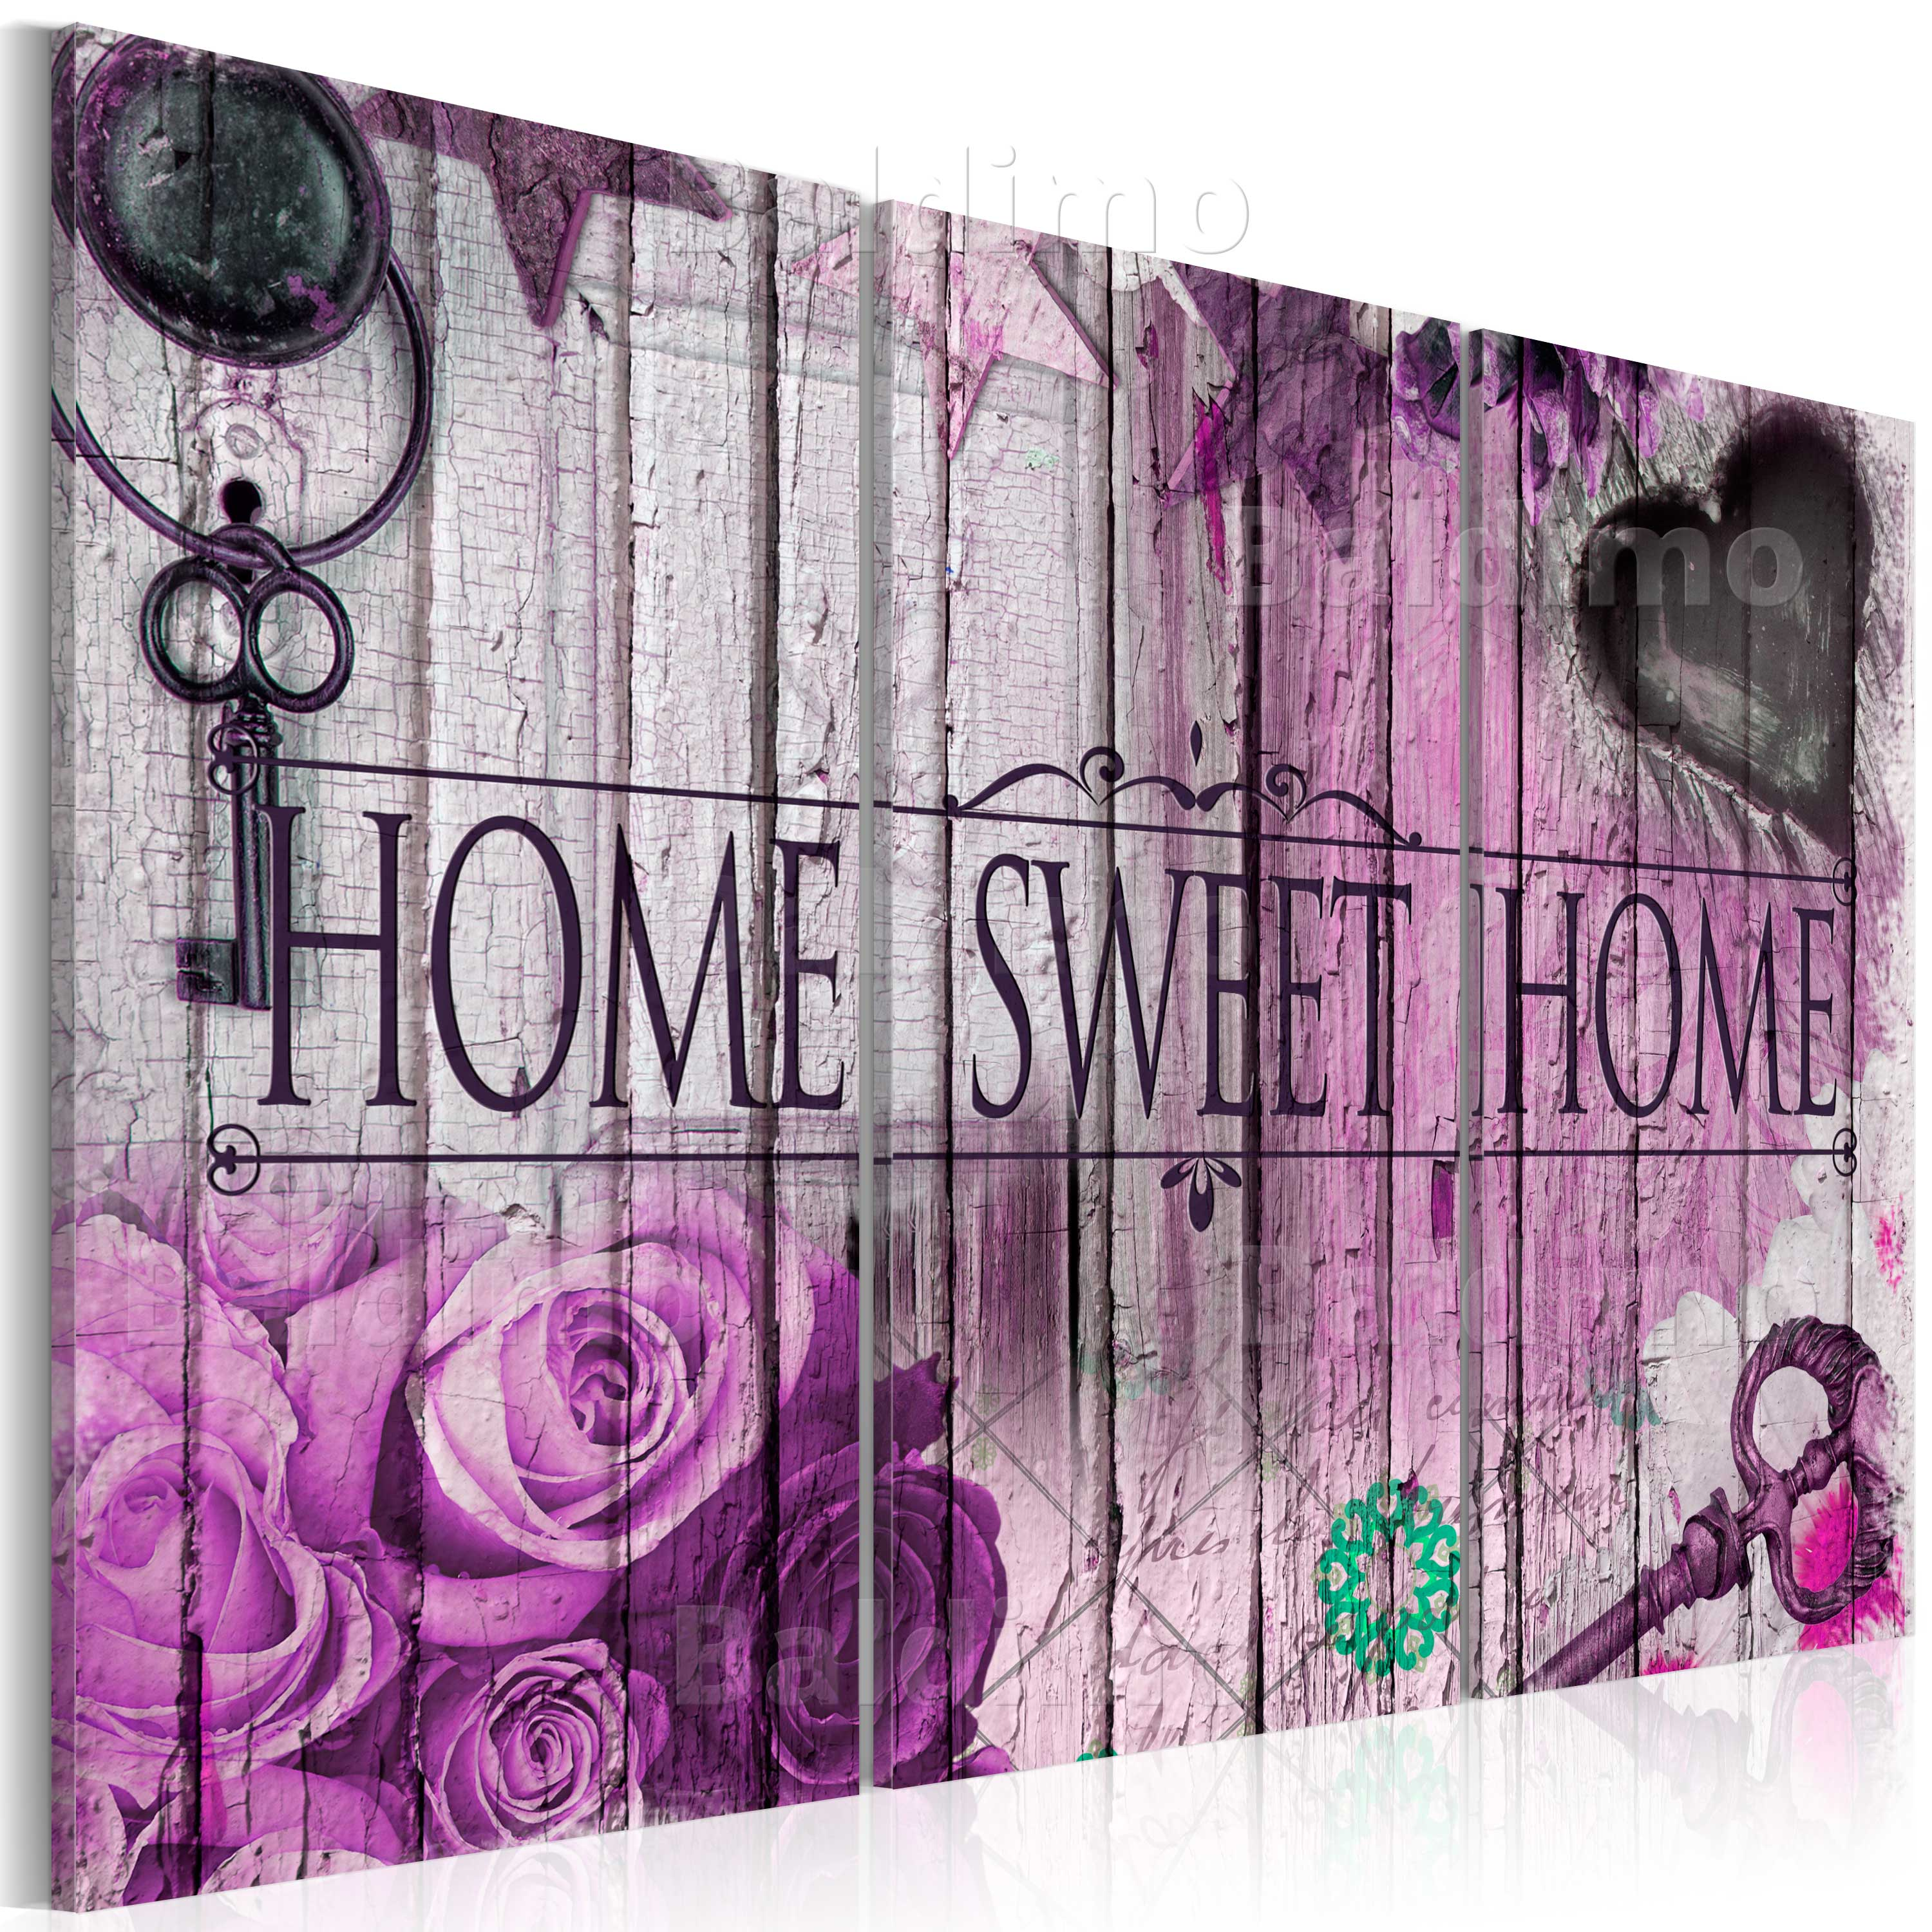 LARGE CANVAS WALL ART PRINT + IMAGE + PICTURE + PHOTO SWEET HOME f-A-0055-b-g